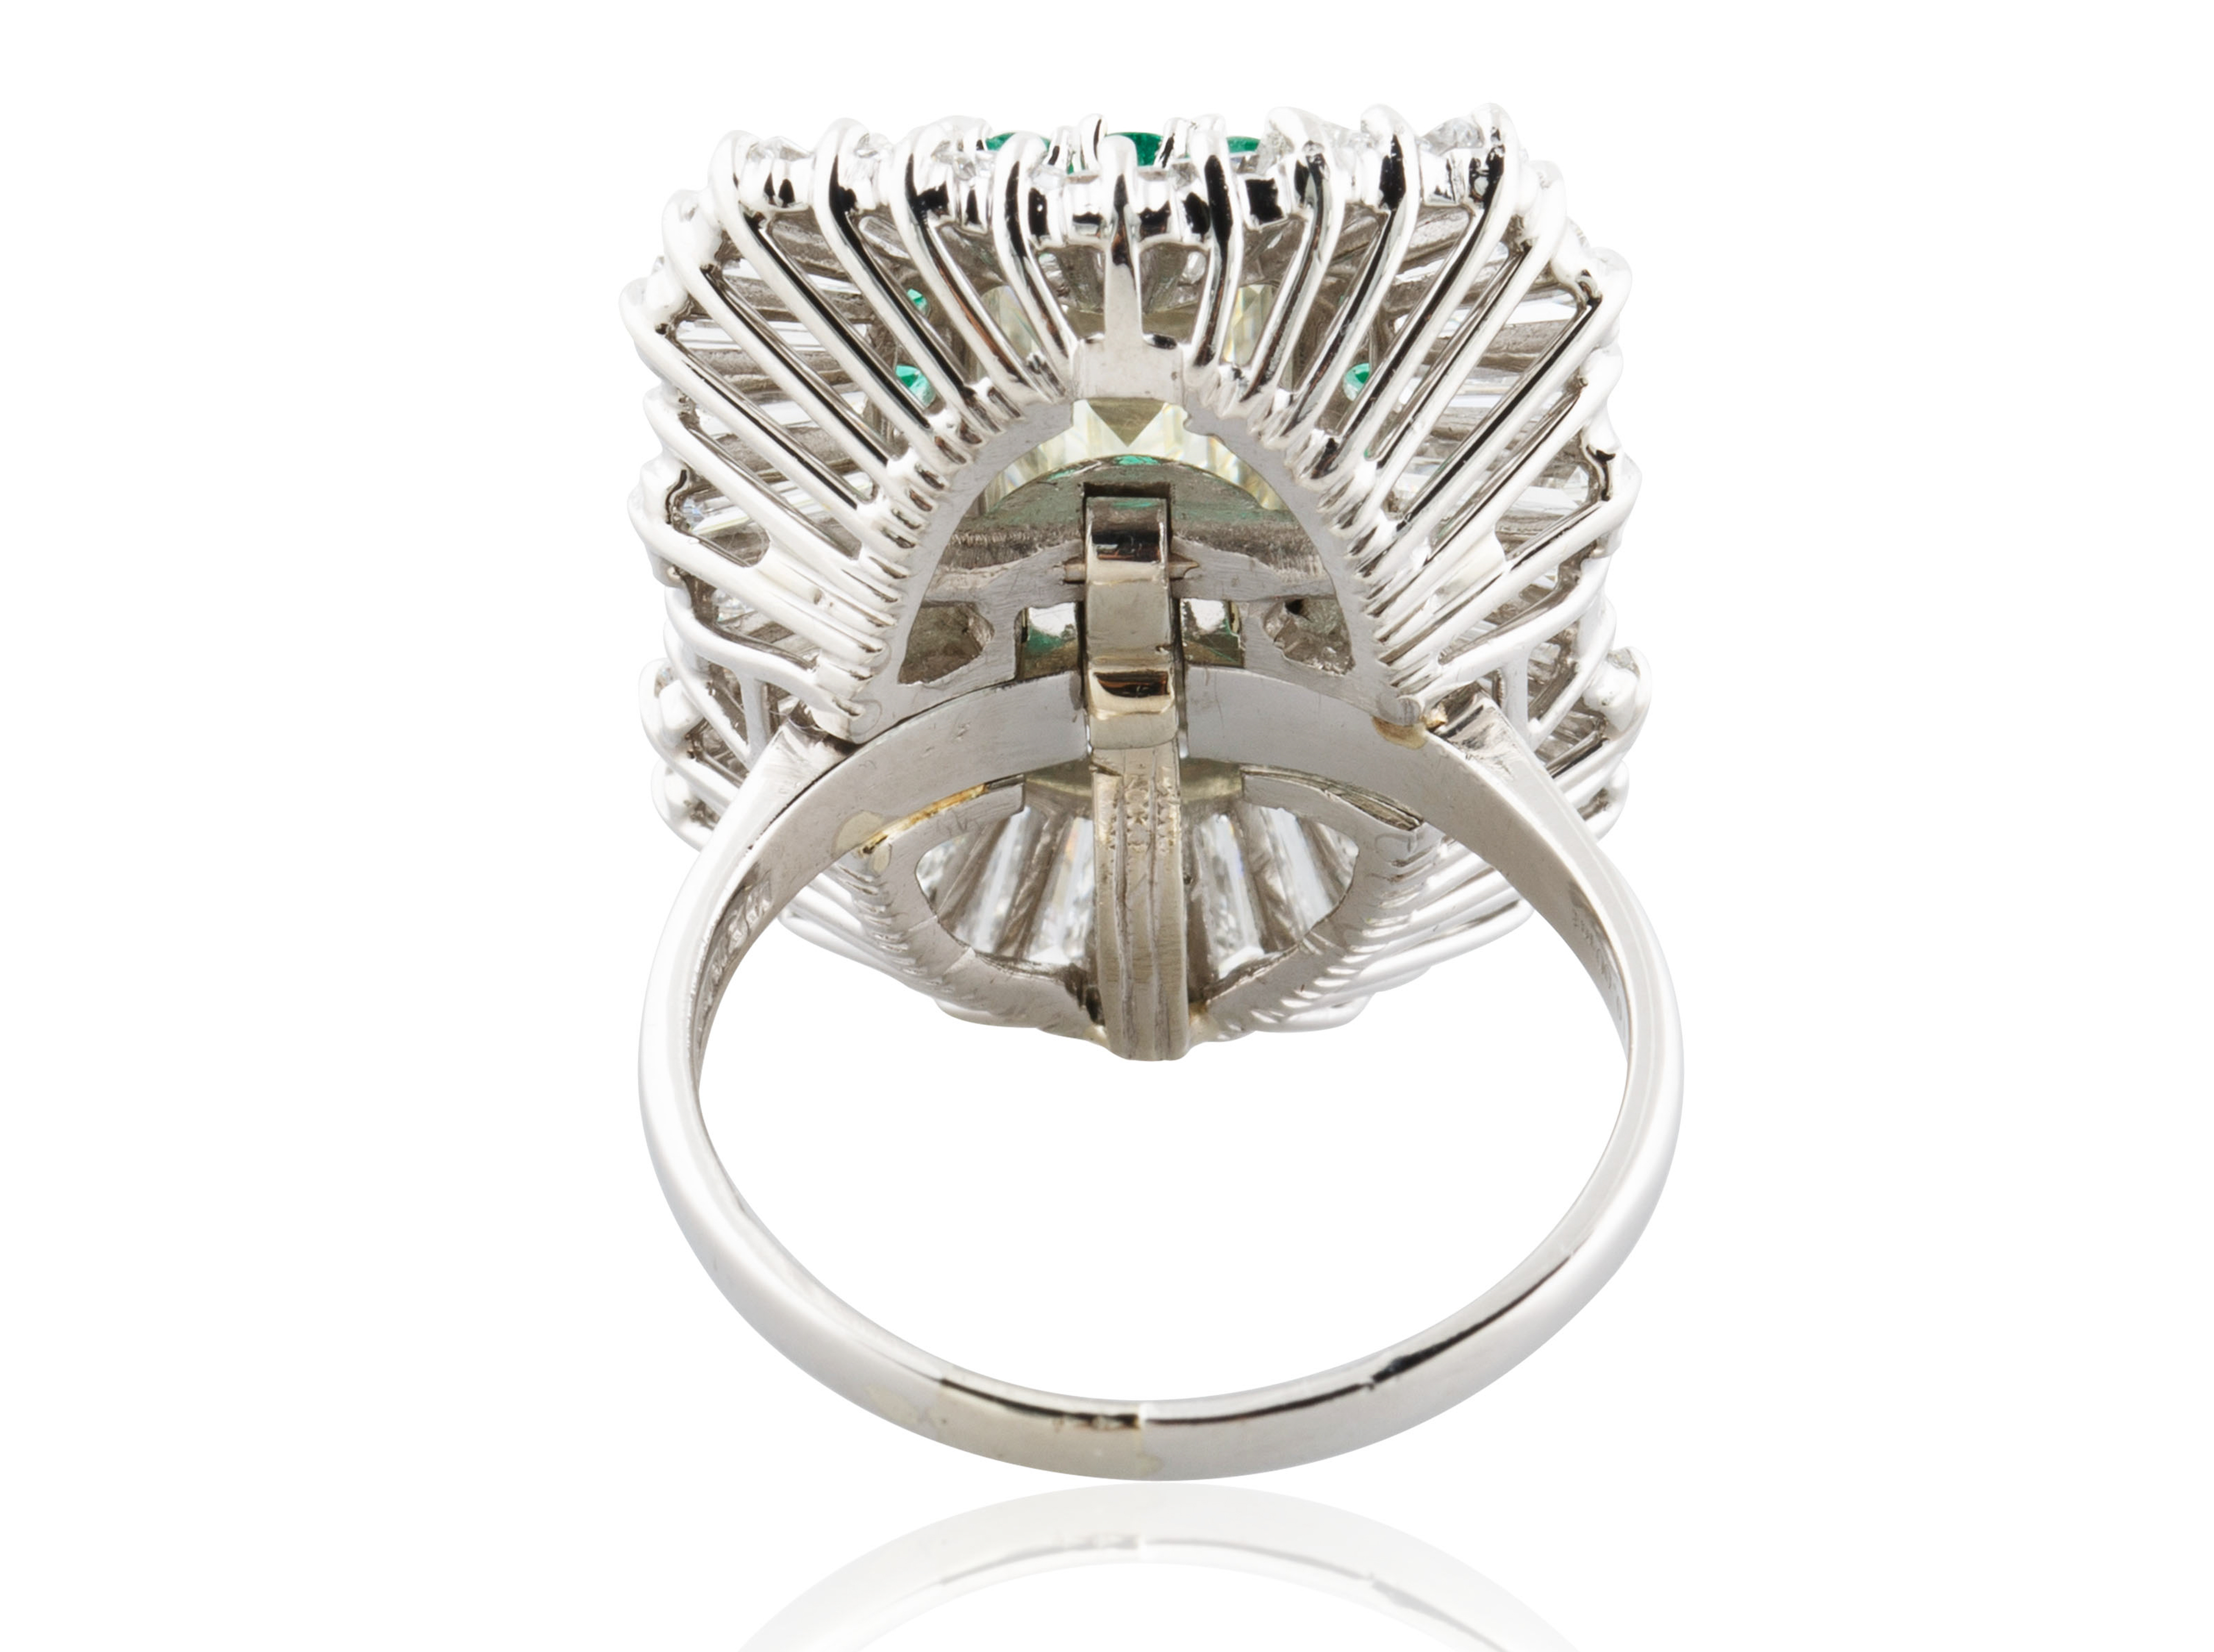 A 5.03 KT EMERALD CUT DIAMOND RING IN A BALLERINA SETTING - Image 3 of 7